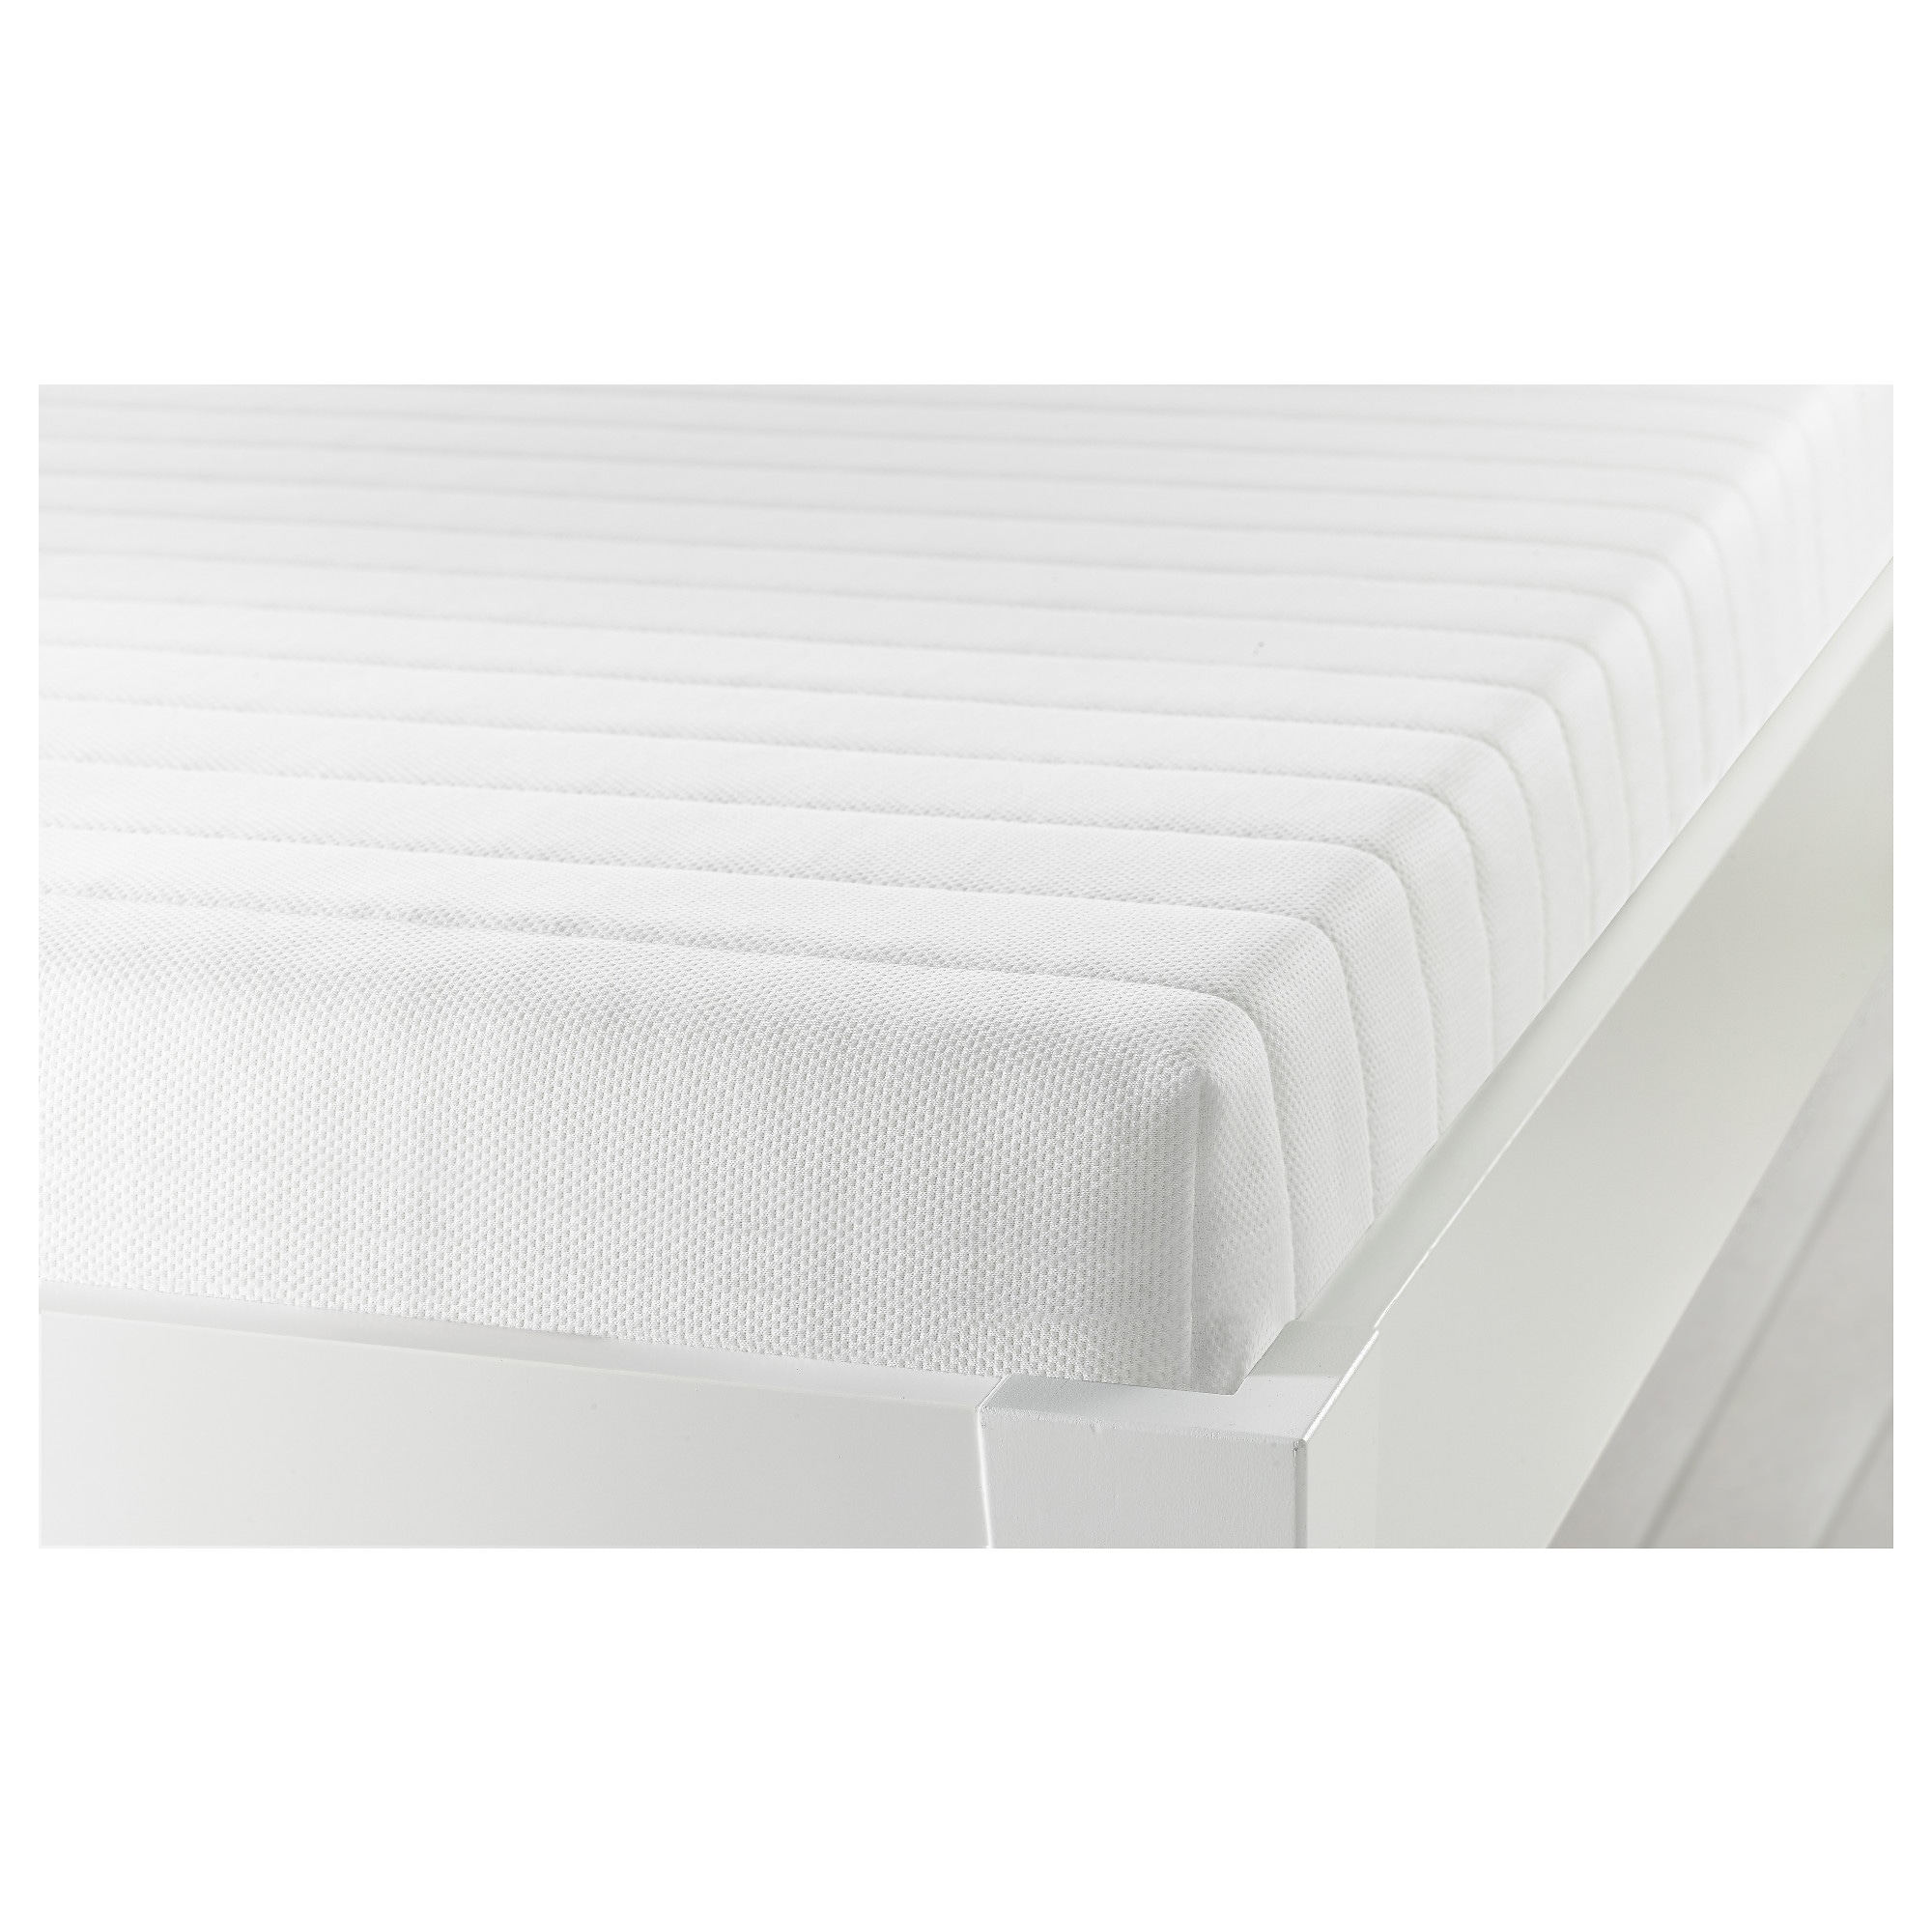 Meistervik Foam Mattress